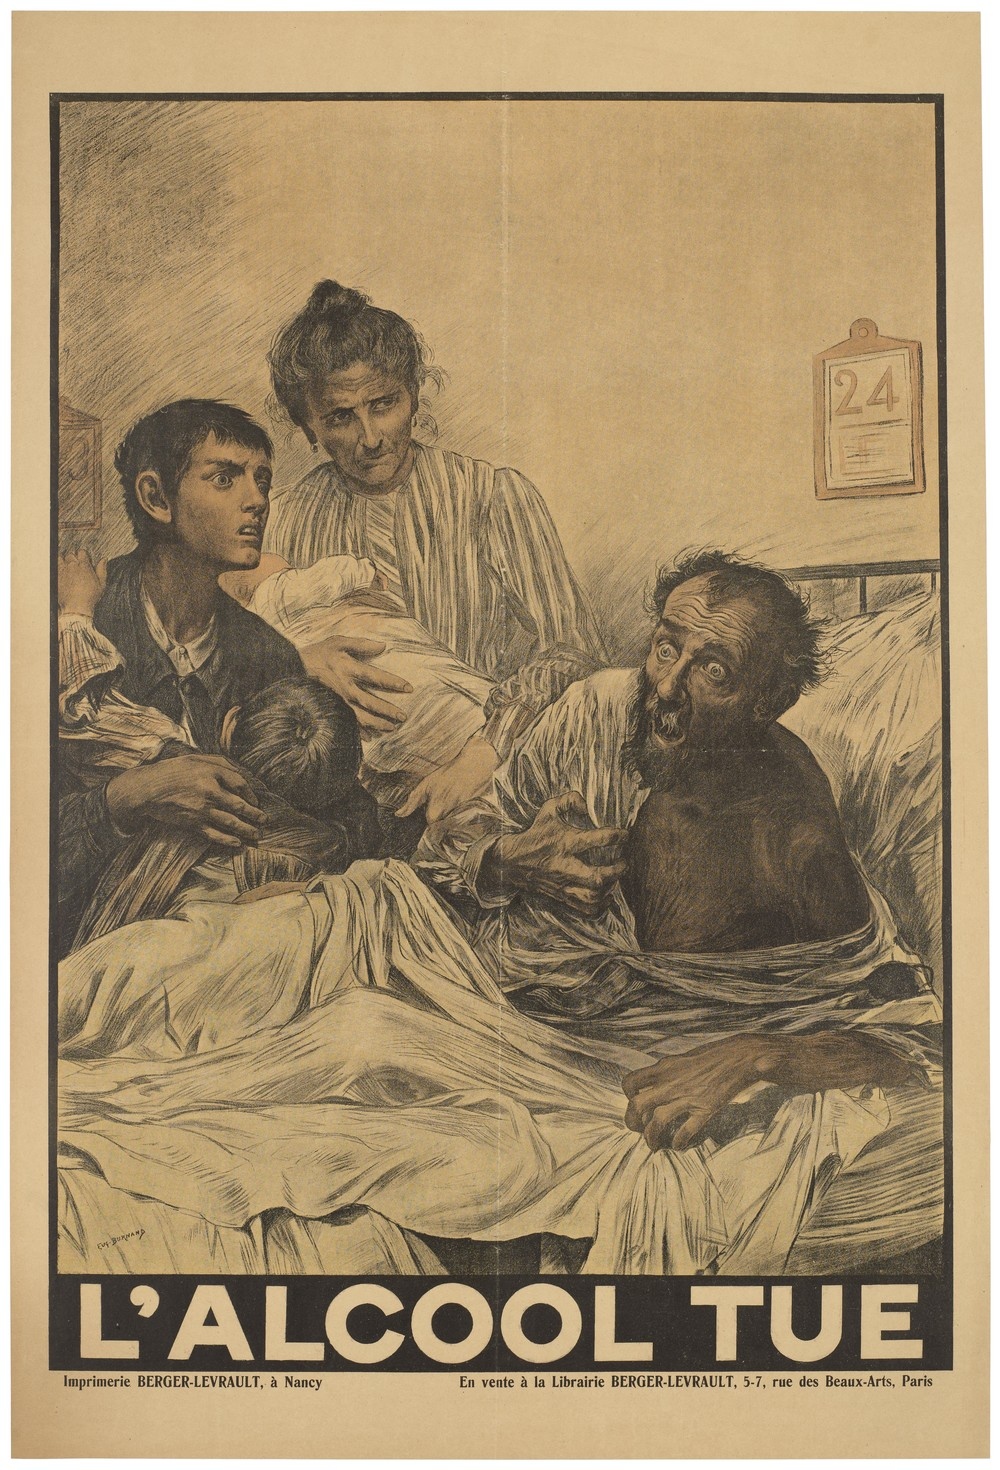 'Alcohol Kills' - An alcoholic man with delirium tremens on his deathbed, surrounded by his terrified family. Iconographic Collections Keywords: Eugène Burnand. Wikipedia. Creative Commons 4.0